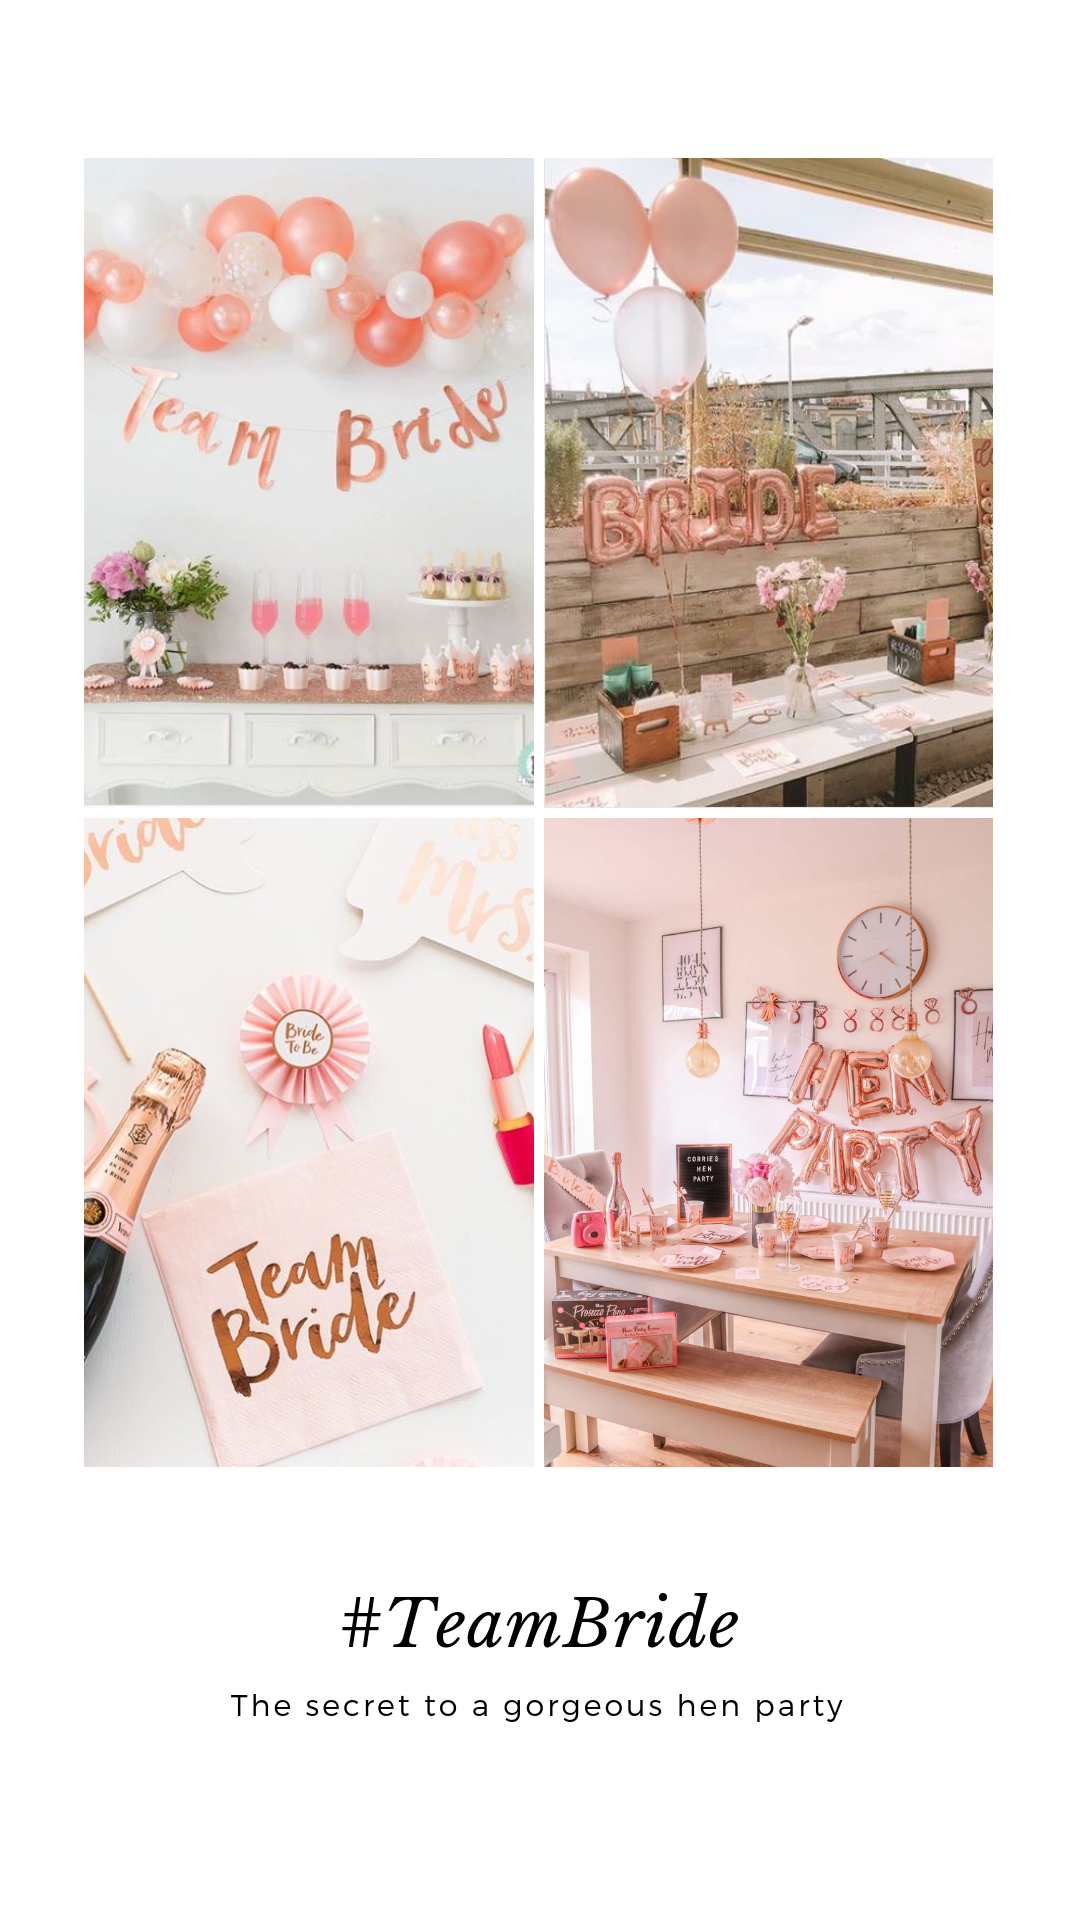 Team Bride To Be Hen Party Accessories Floral Pink /& Rose Gold Party Decorations